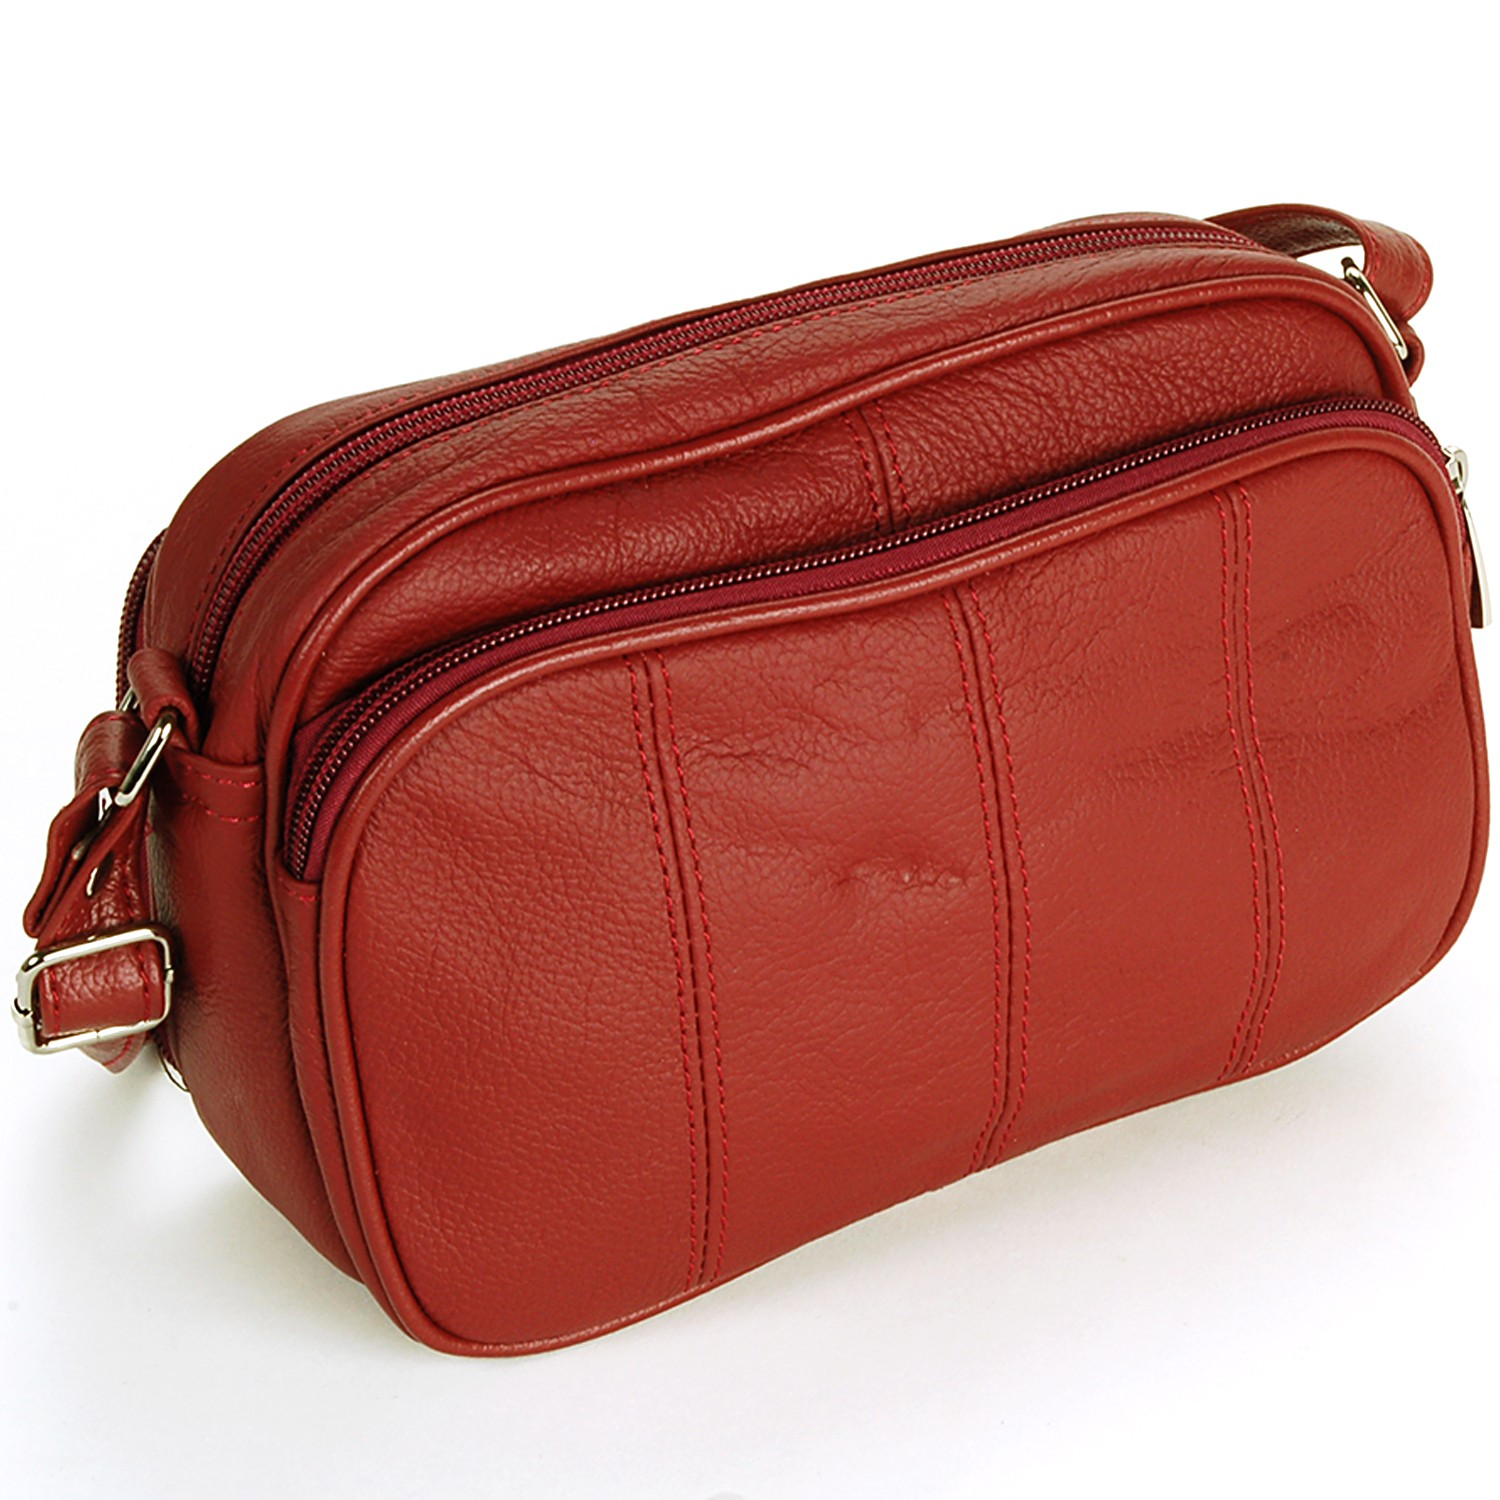 Womens Purses. Create a signature look with women's purses. From leather to suede purses in a variety of styles, find a purse to complement any ensemble. Discover the handbags by Michael Kors, Fossil, Kipling and many others. Want a purse you can wear with ease?